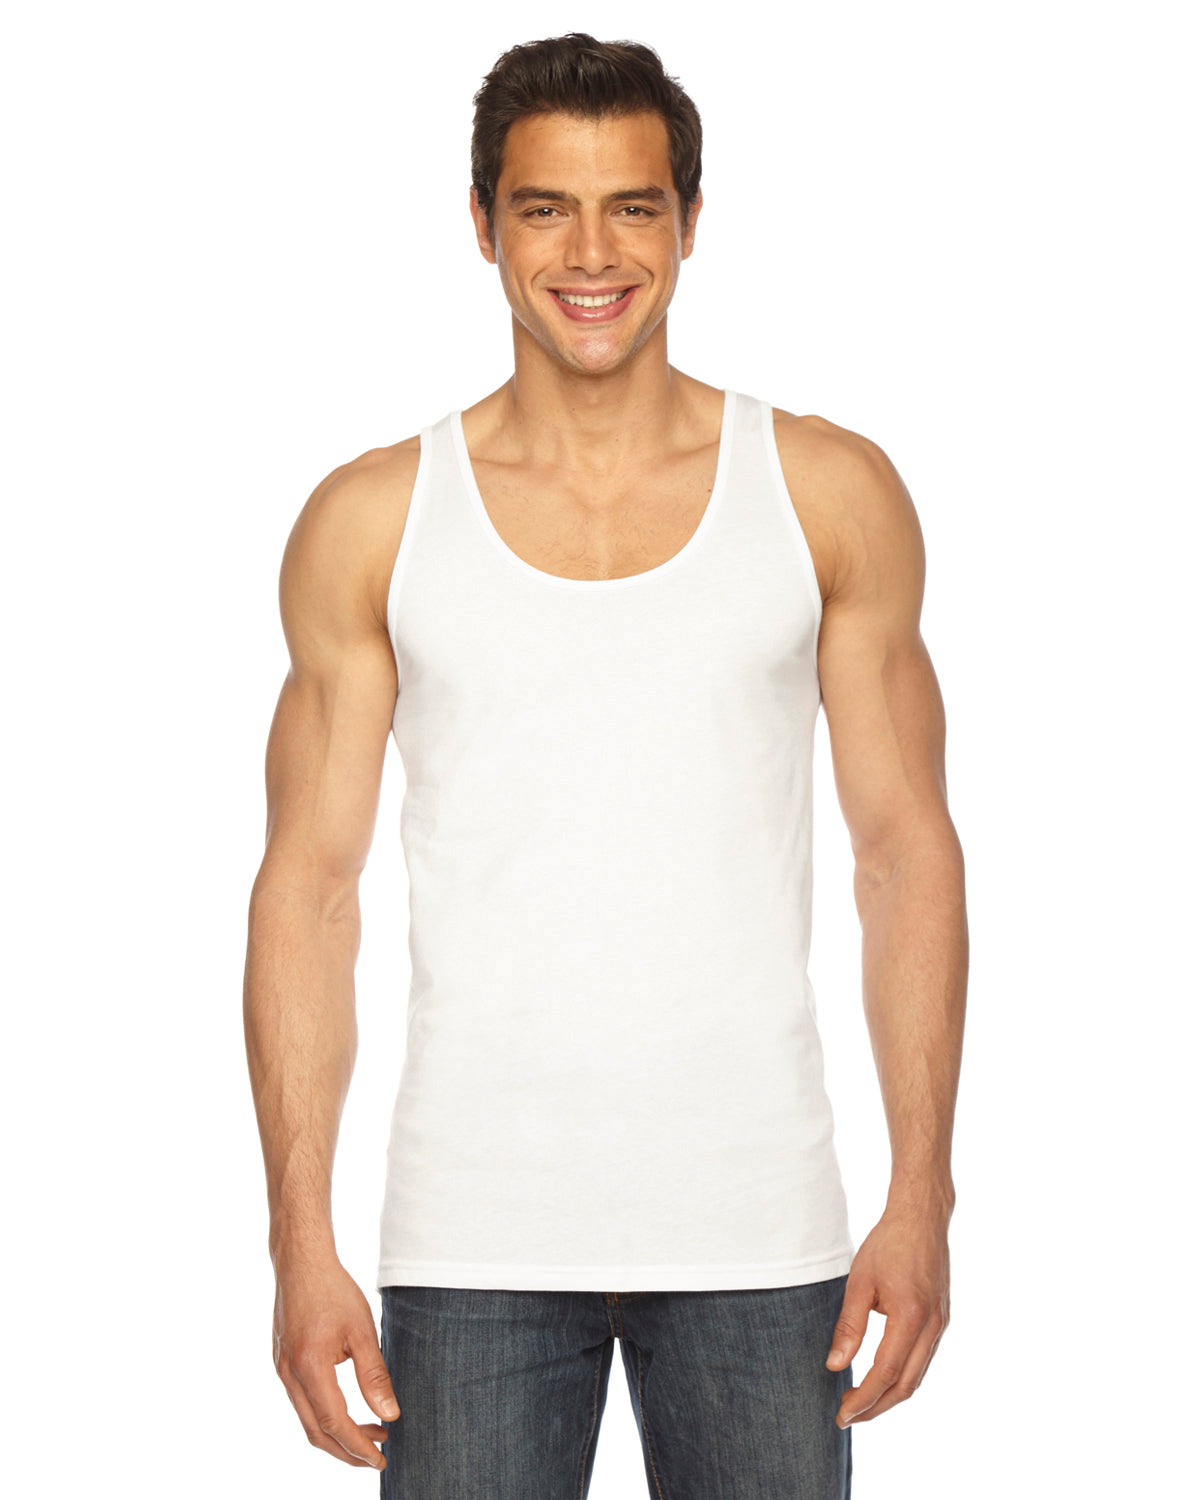 AMERICAN APPAREL UNISEX POLY COTTON TANK